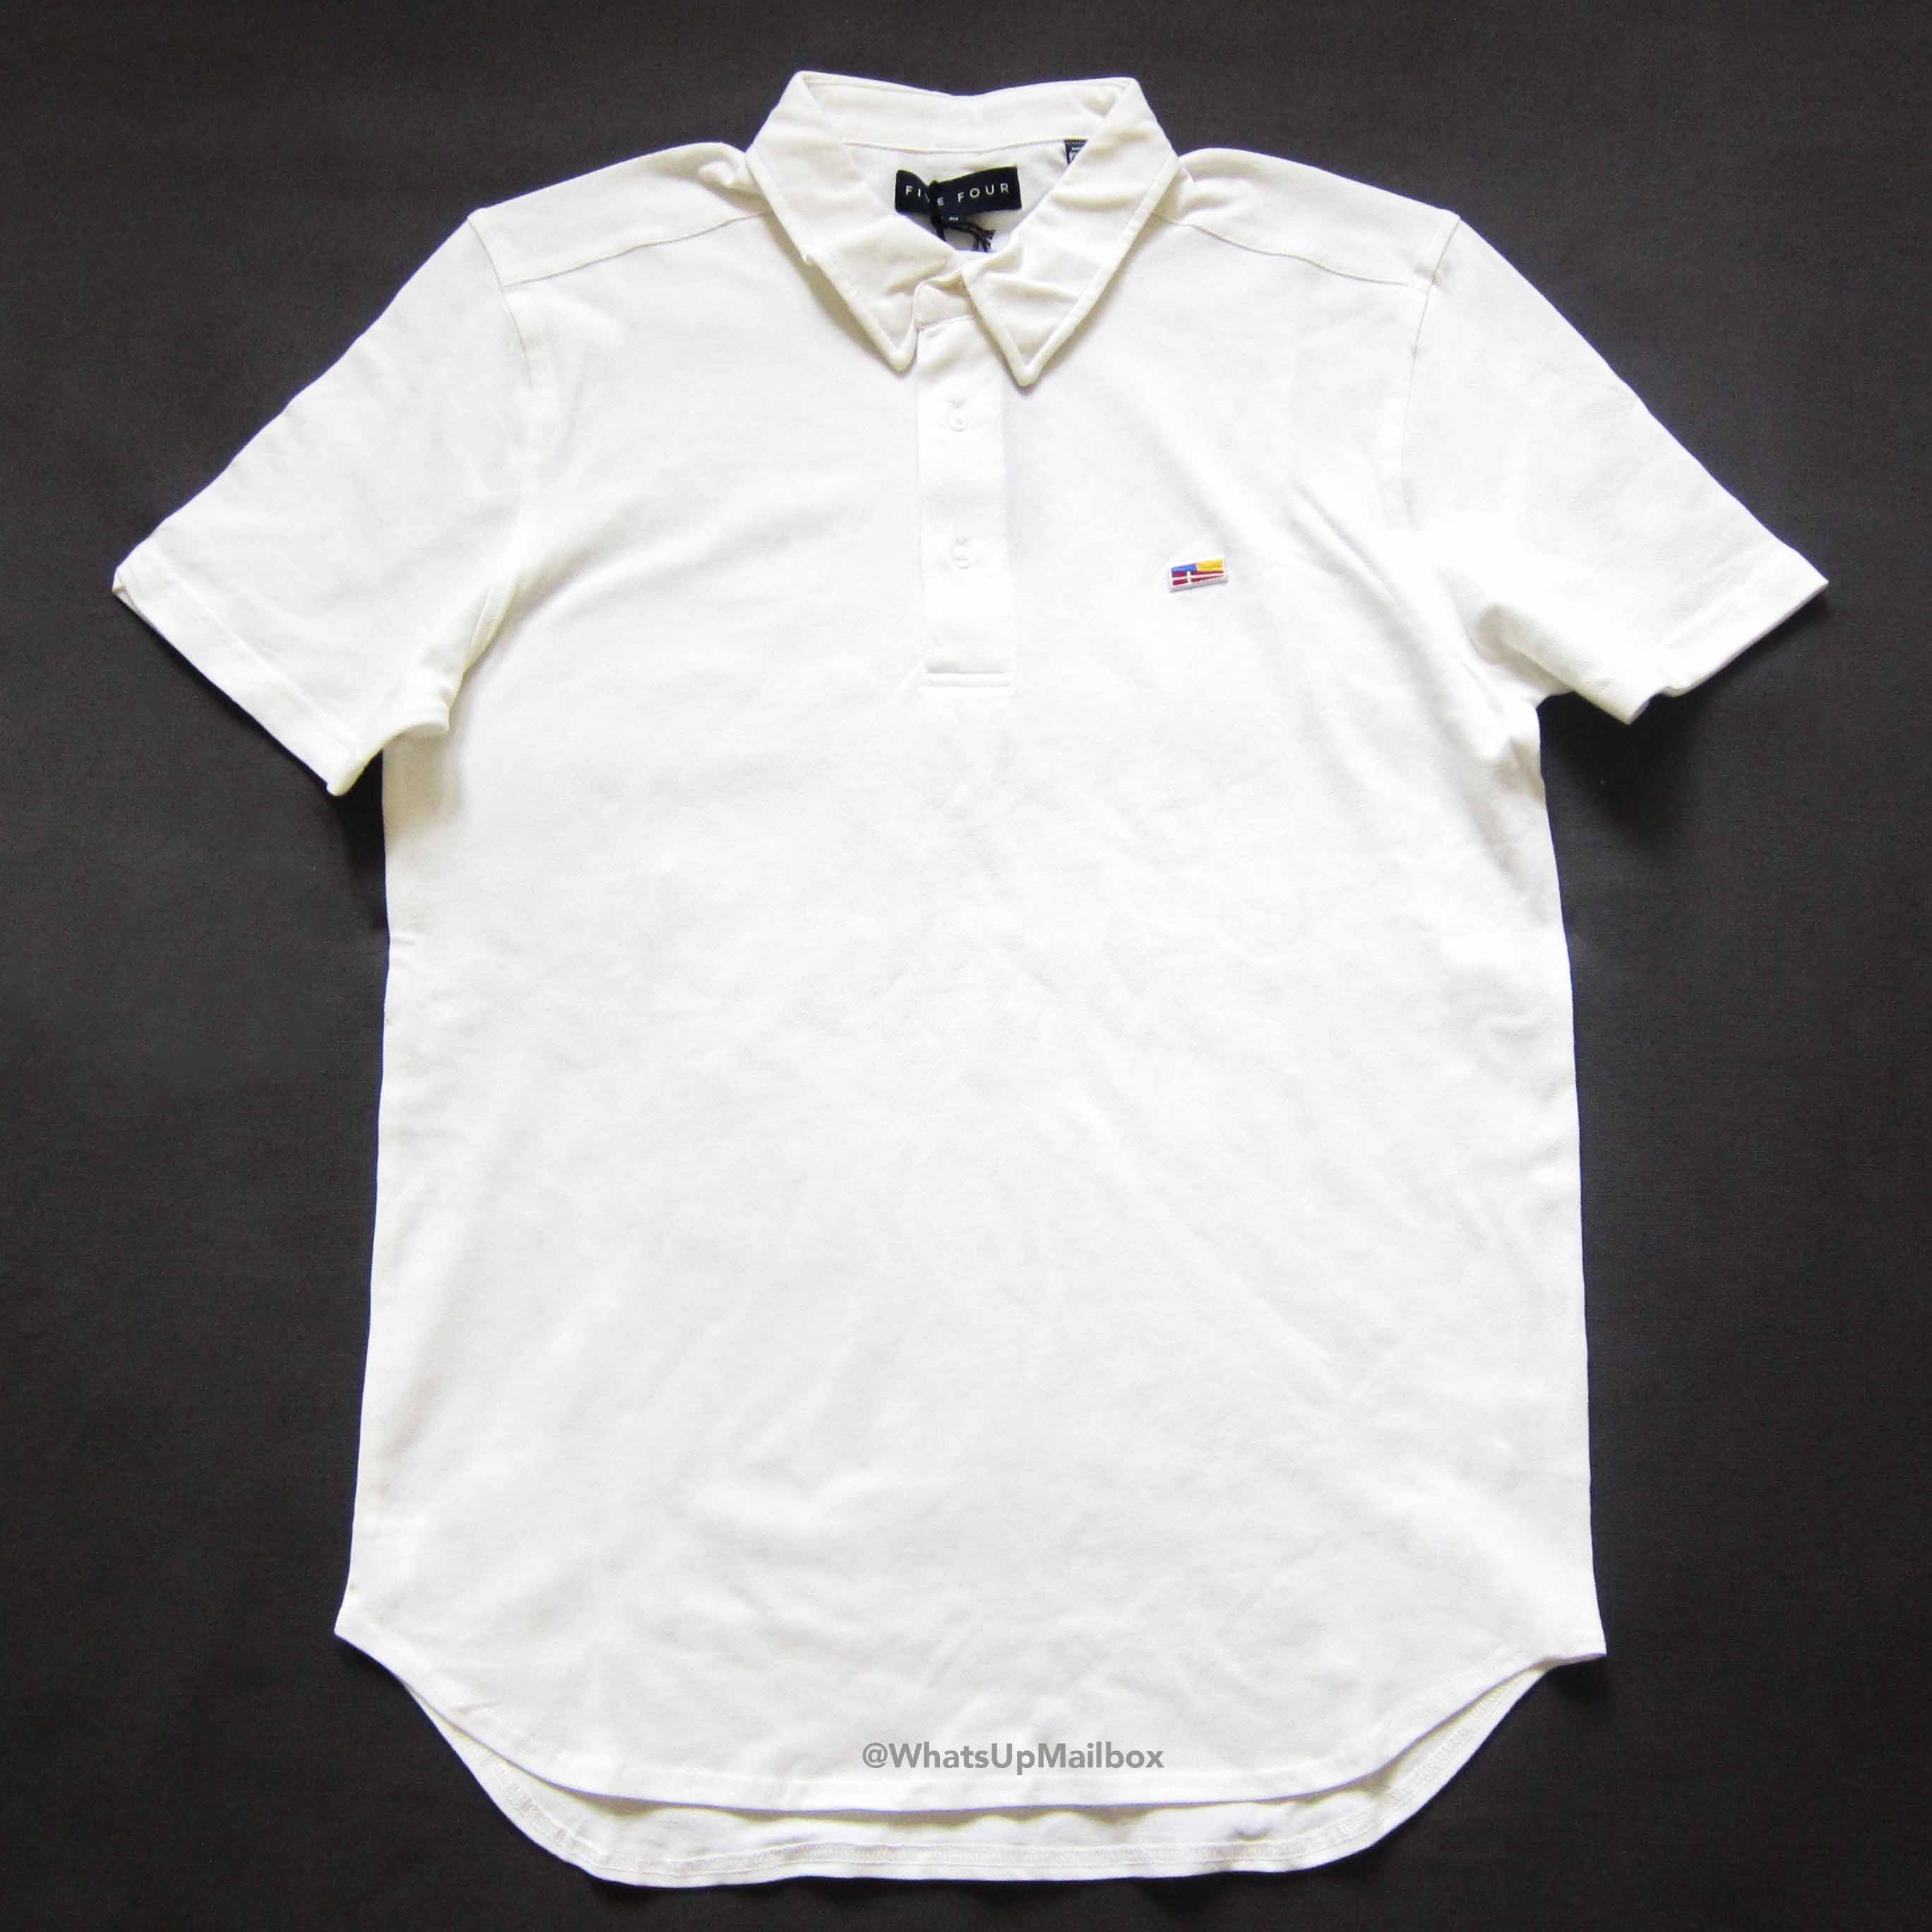 Five Four Club Wainscott White Polo